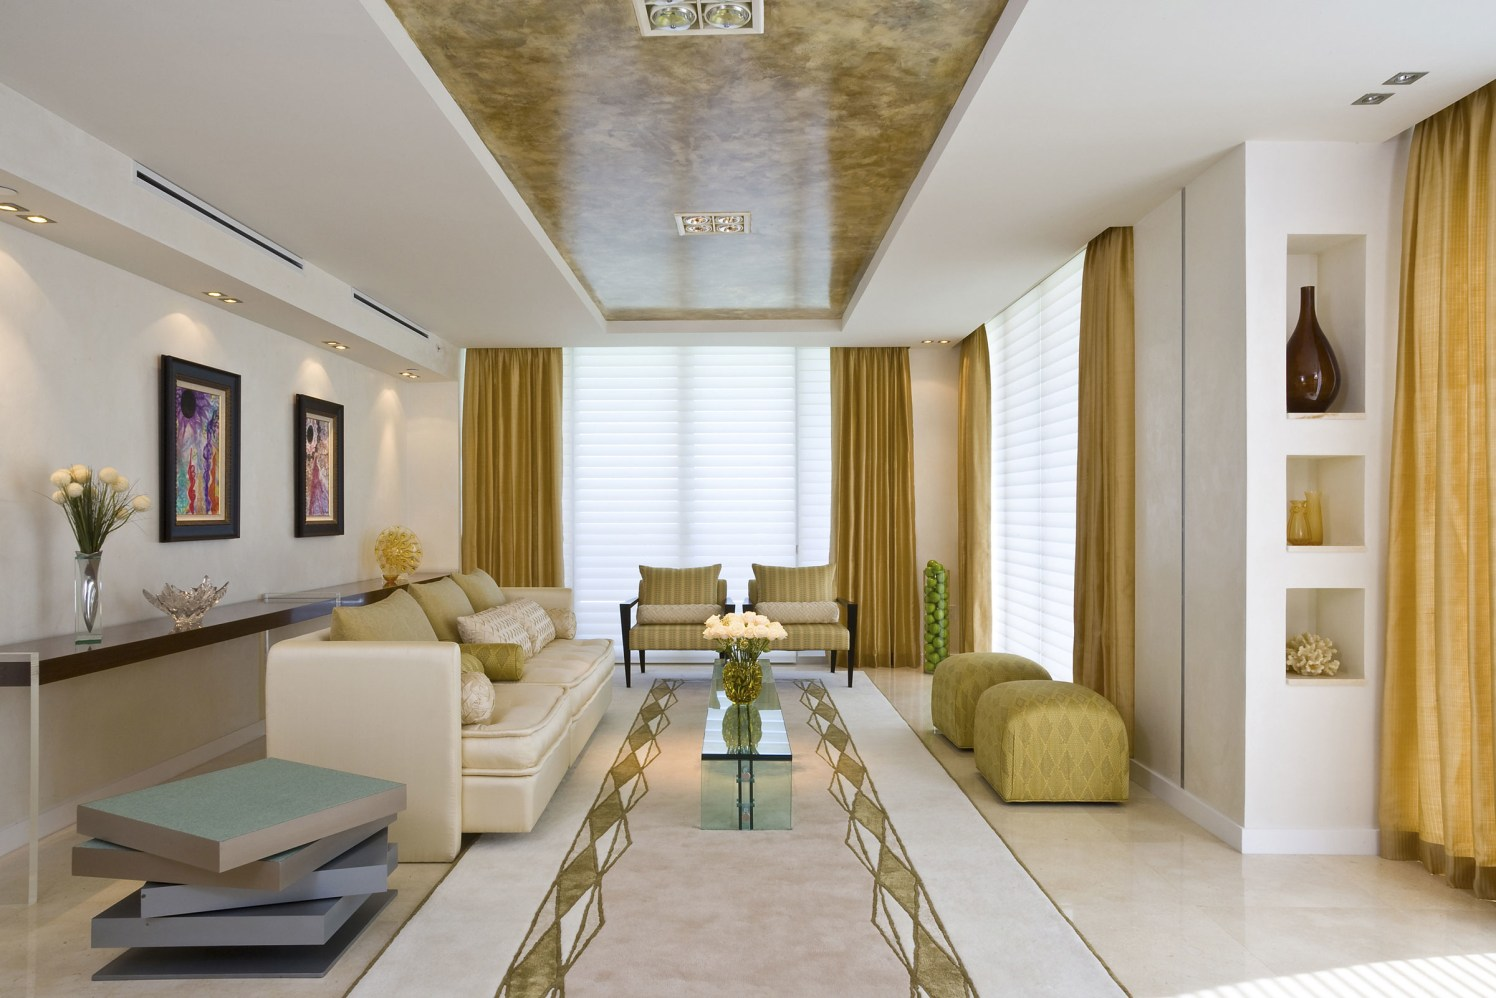 Golden glory by Priya Shah(test) Modern | Interior Design Photos & Ideas